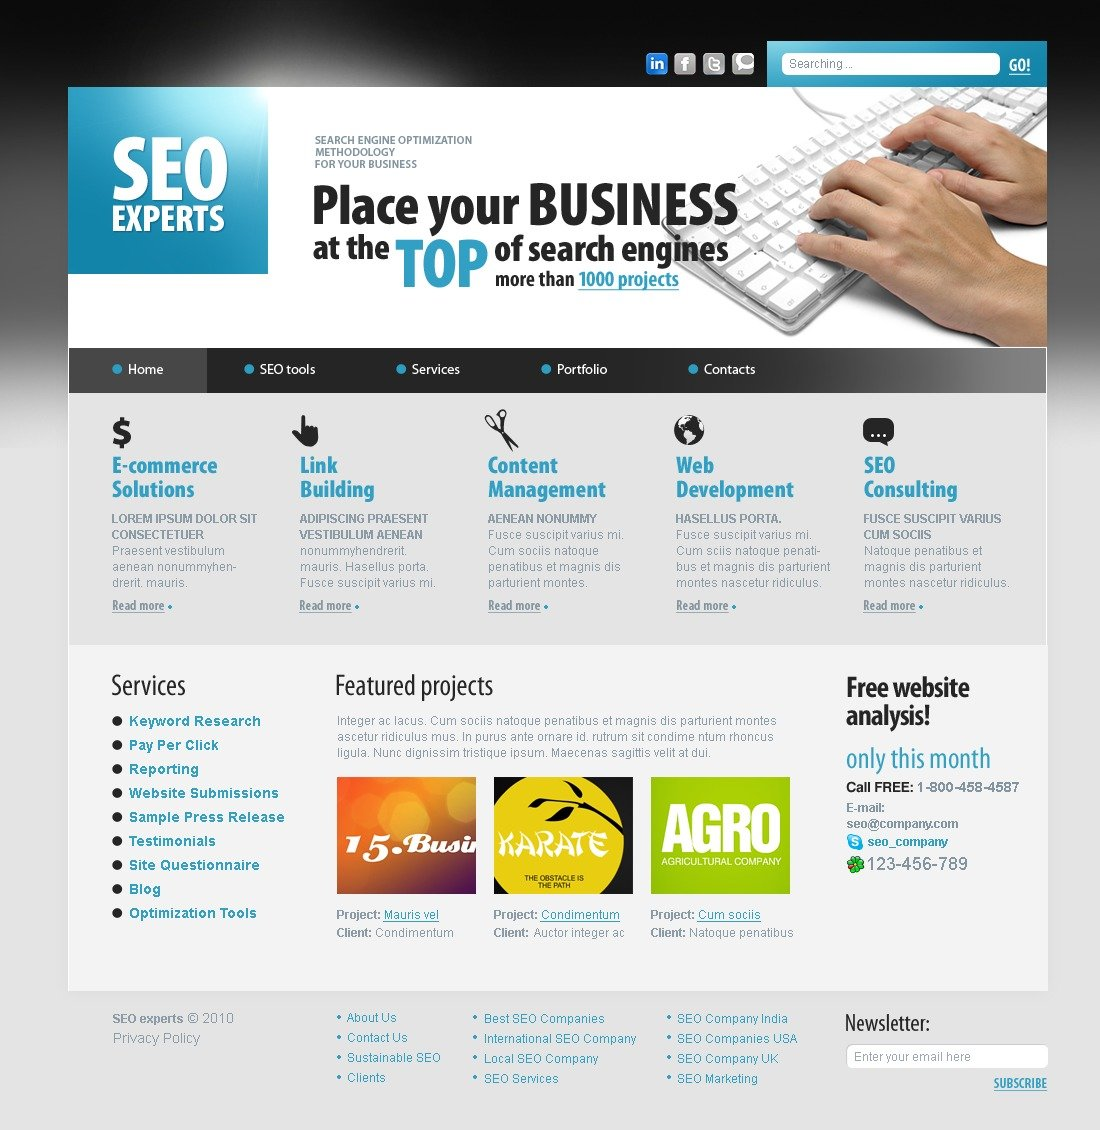 The SEO Agency Independent PSD Design 54087, one of the best PSD templates of its kind (business, internet, most popular, flash 8, wide), also known as SEO agency independent PSD template, experts PSD template, optimization PSD template, drupal company PSD template, marketing PSD template, advertising PSD template, tools PSD template, consulting PSD template, advertisement PSD template, consultation PSD template, success and related with SEO agency independent, experts, optimization, drupal company, marketing, advertising, tools, consulting, advertisement, consultation, success, etc.